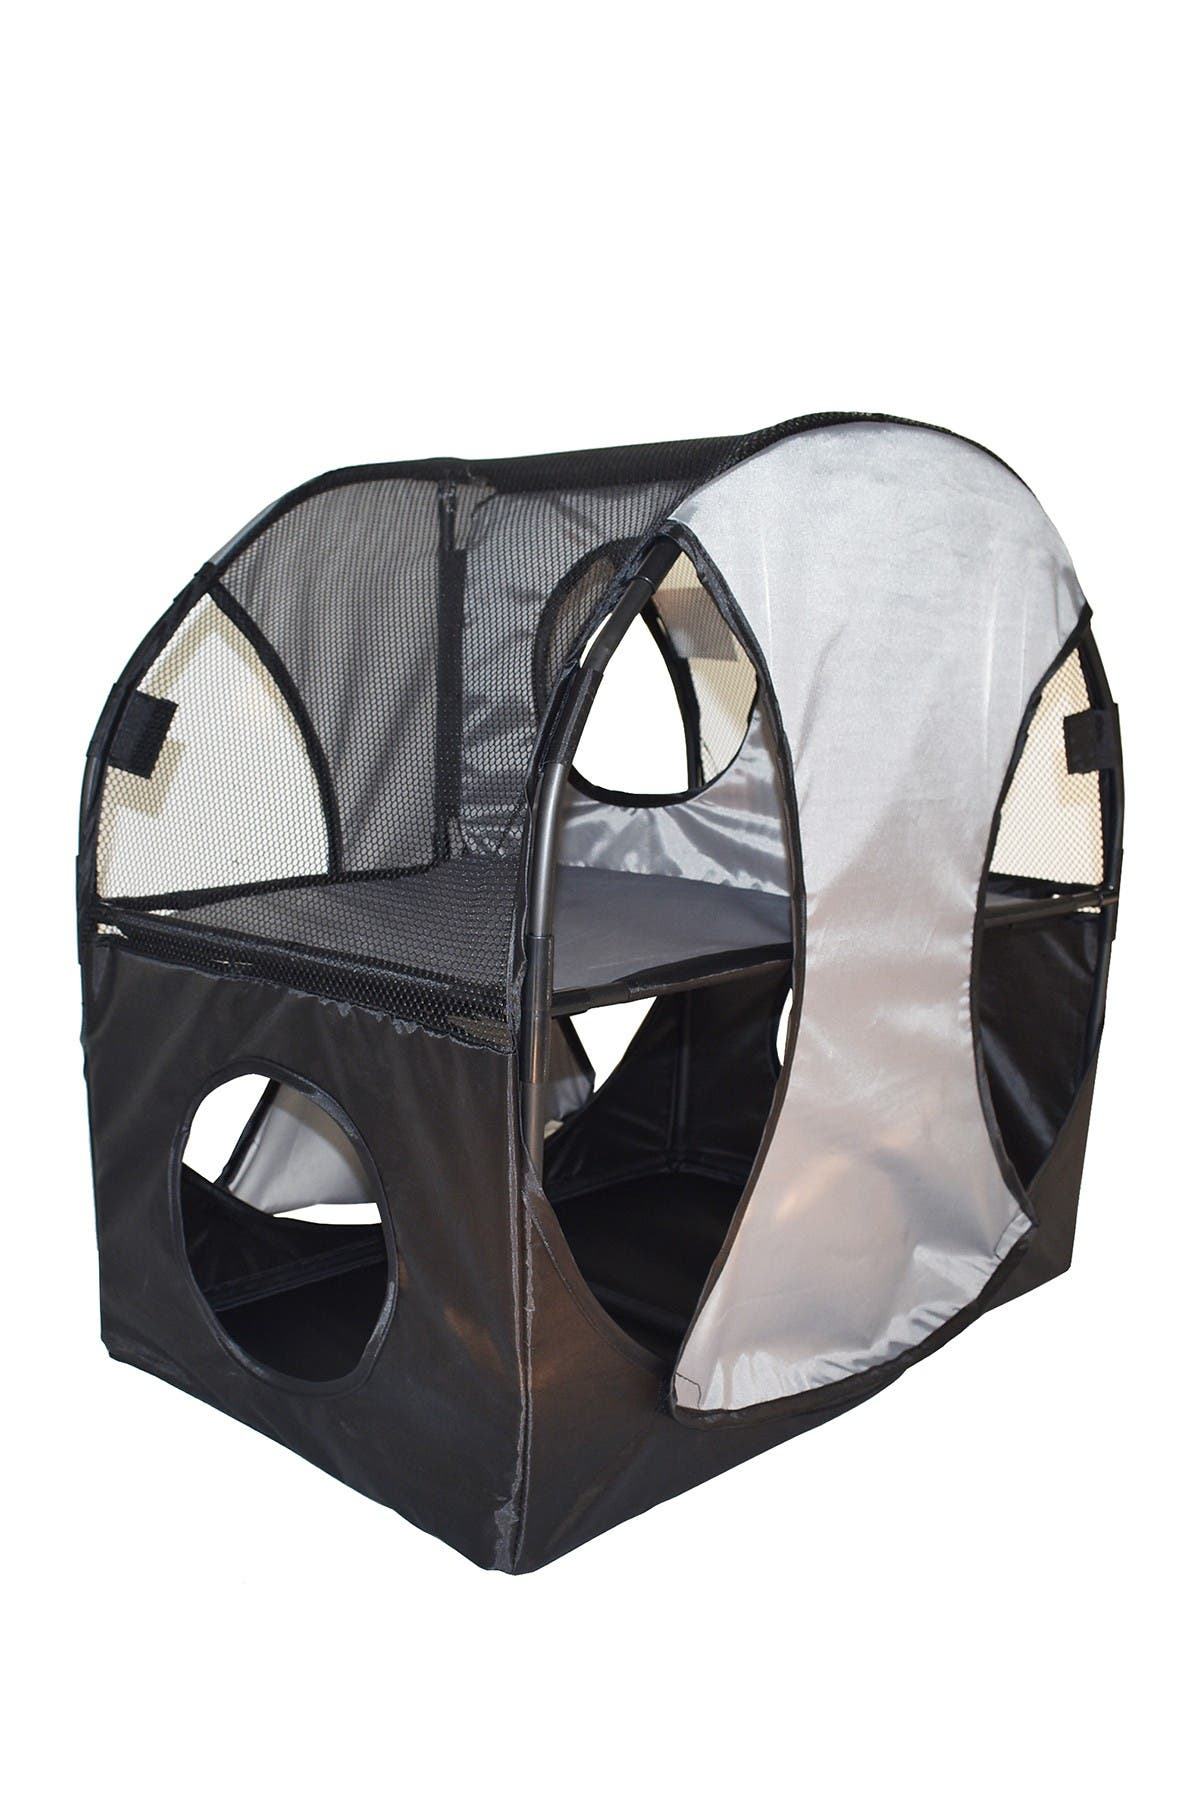 Image of PETKIT Grey/Black Kitty-Play Obstacle Travel Collapsible Soft Folding Pet Cat House